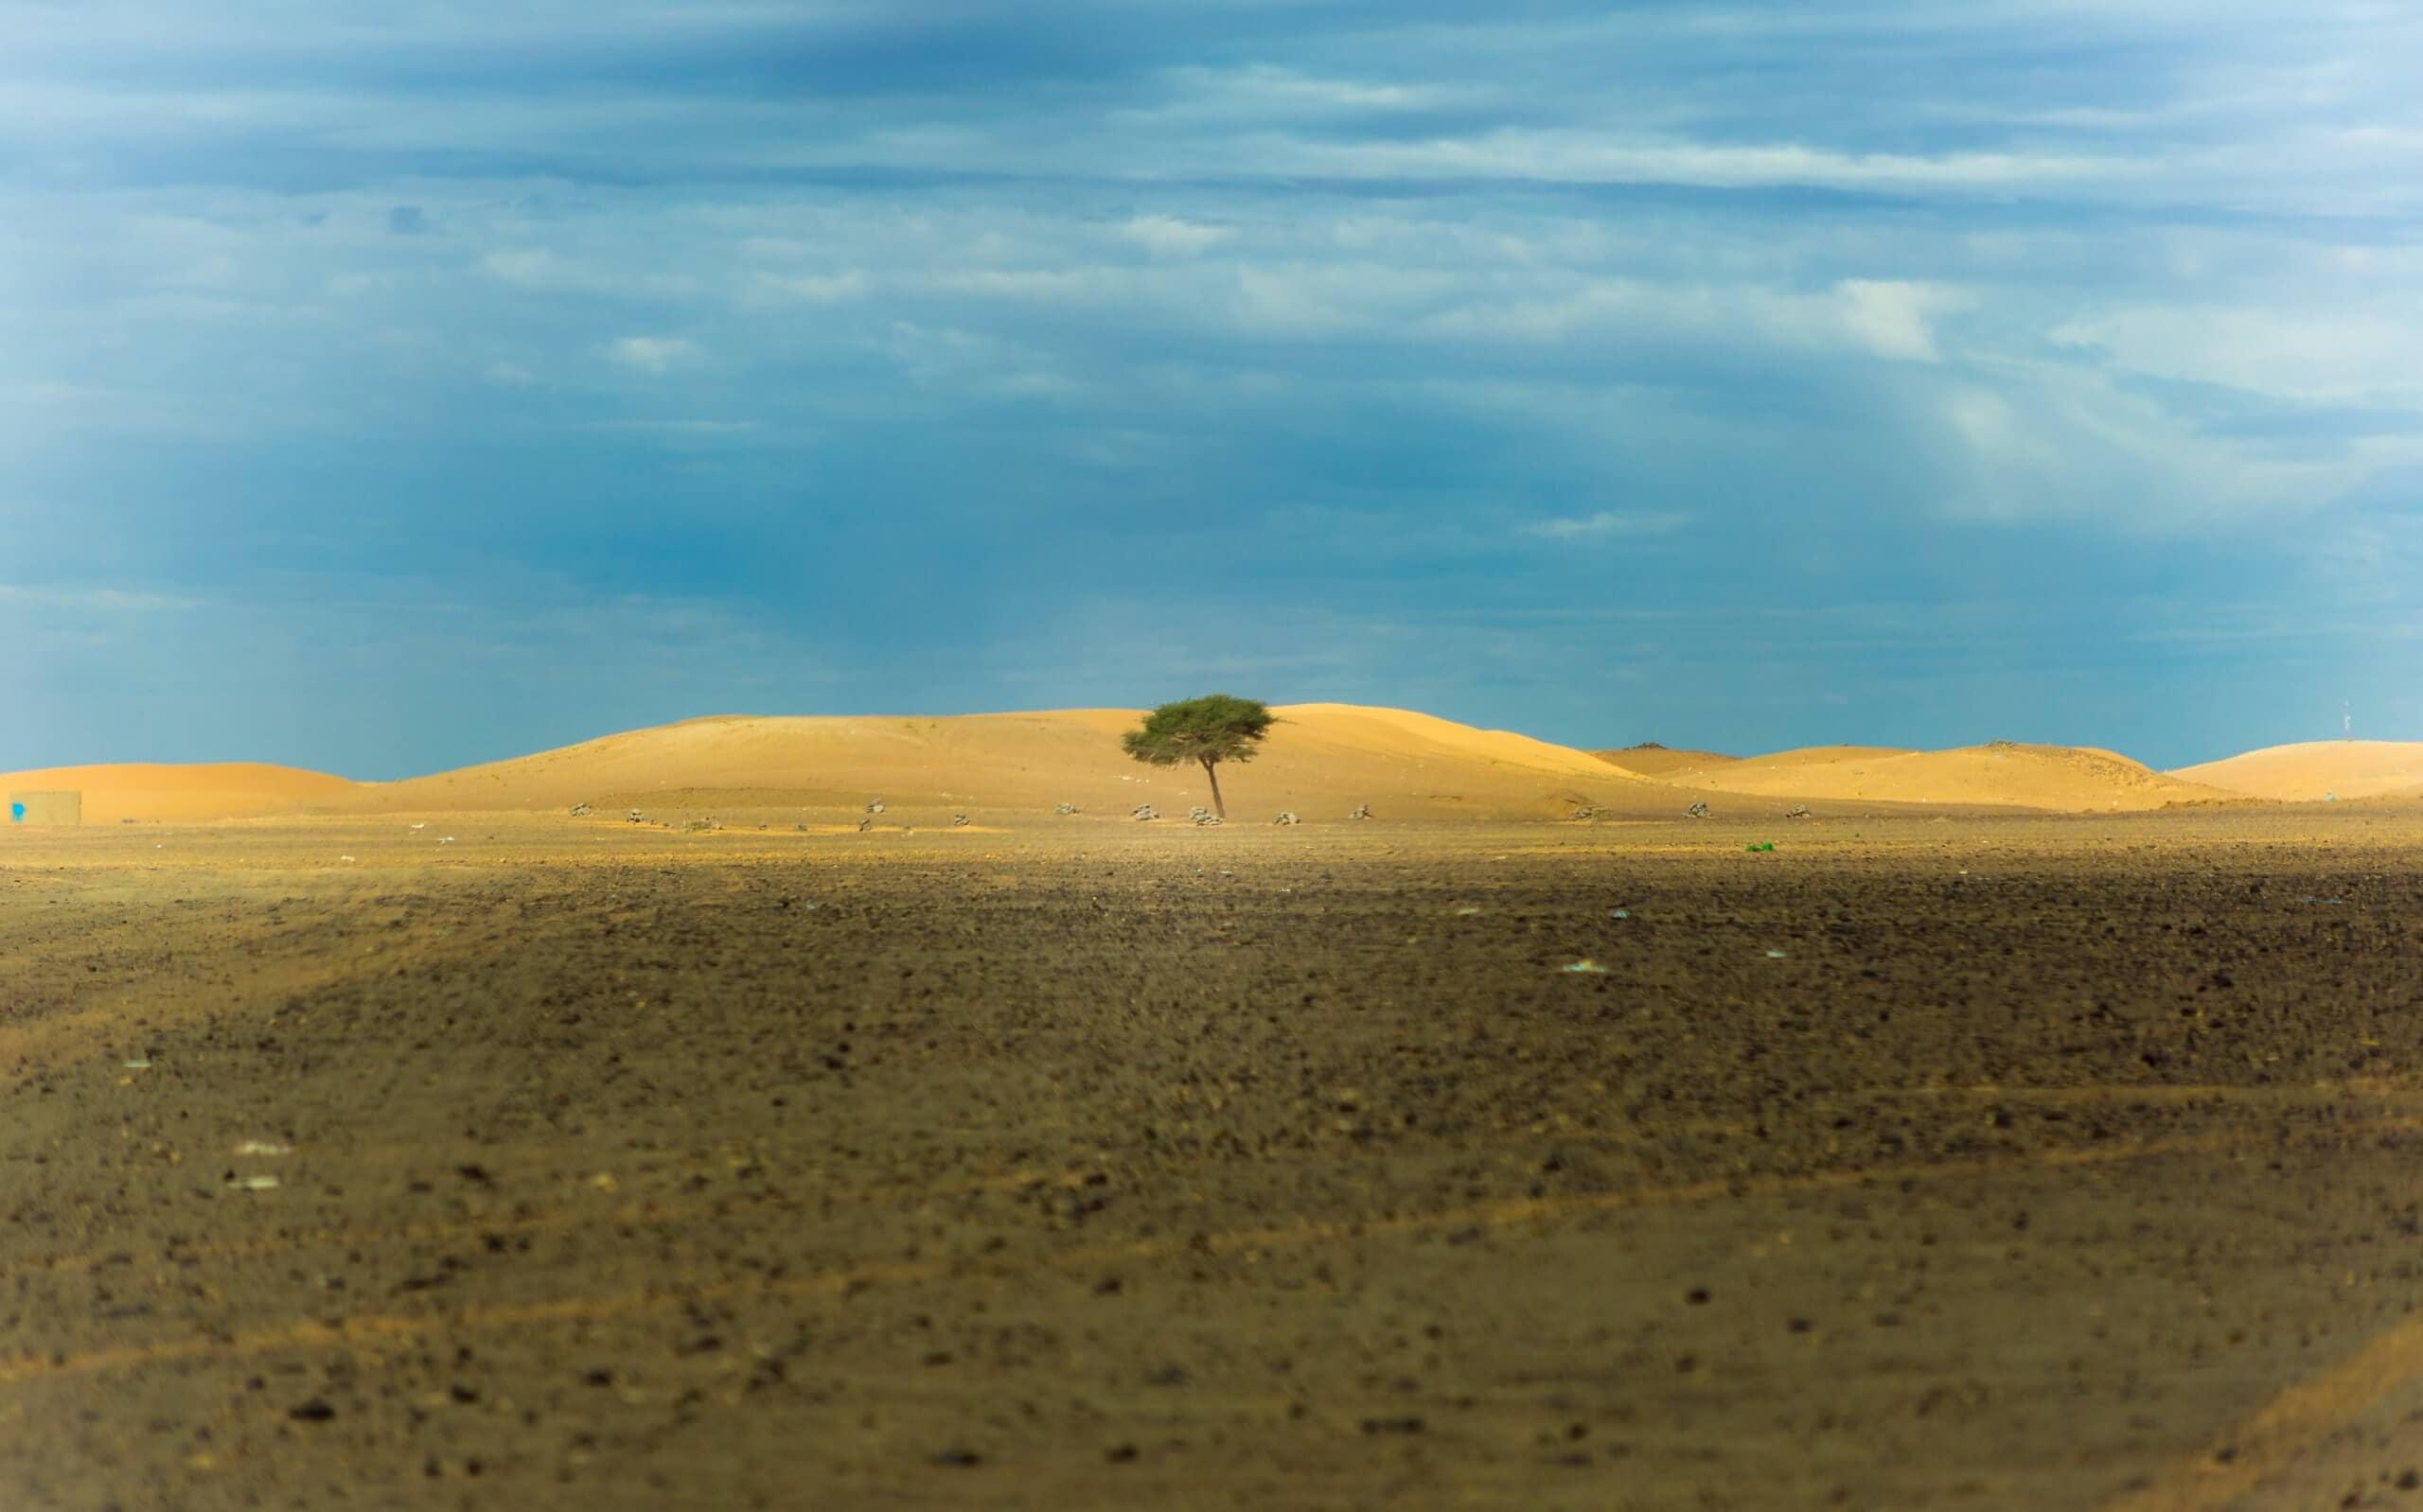 Barren skyline with one tree